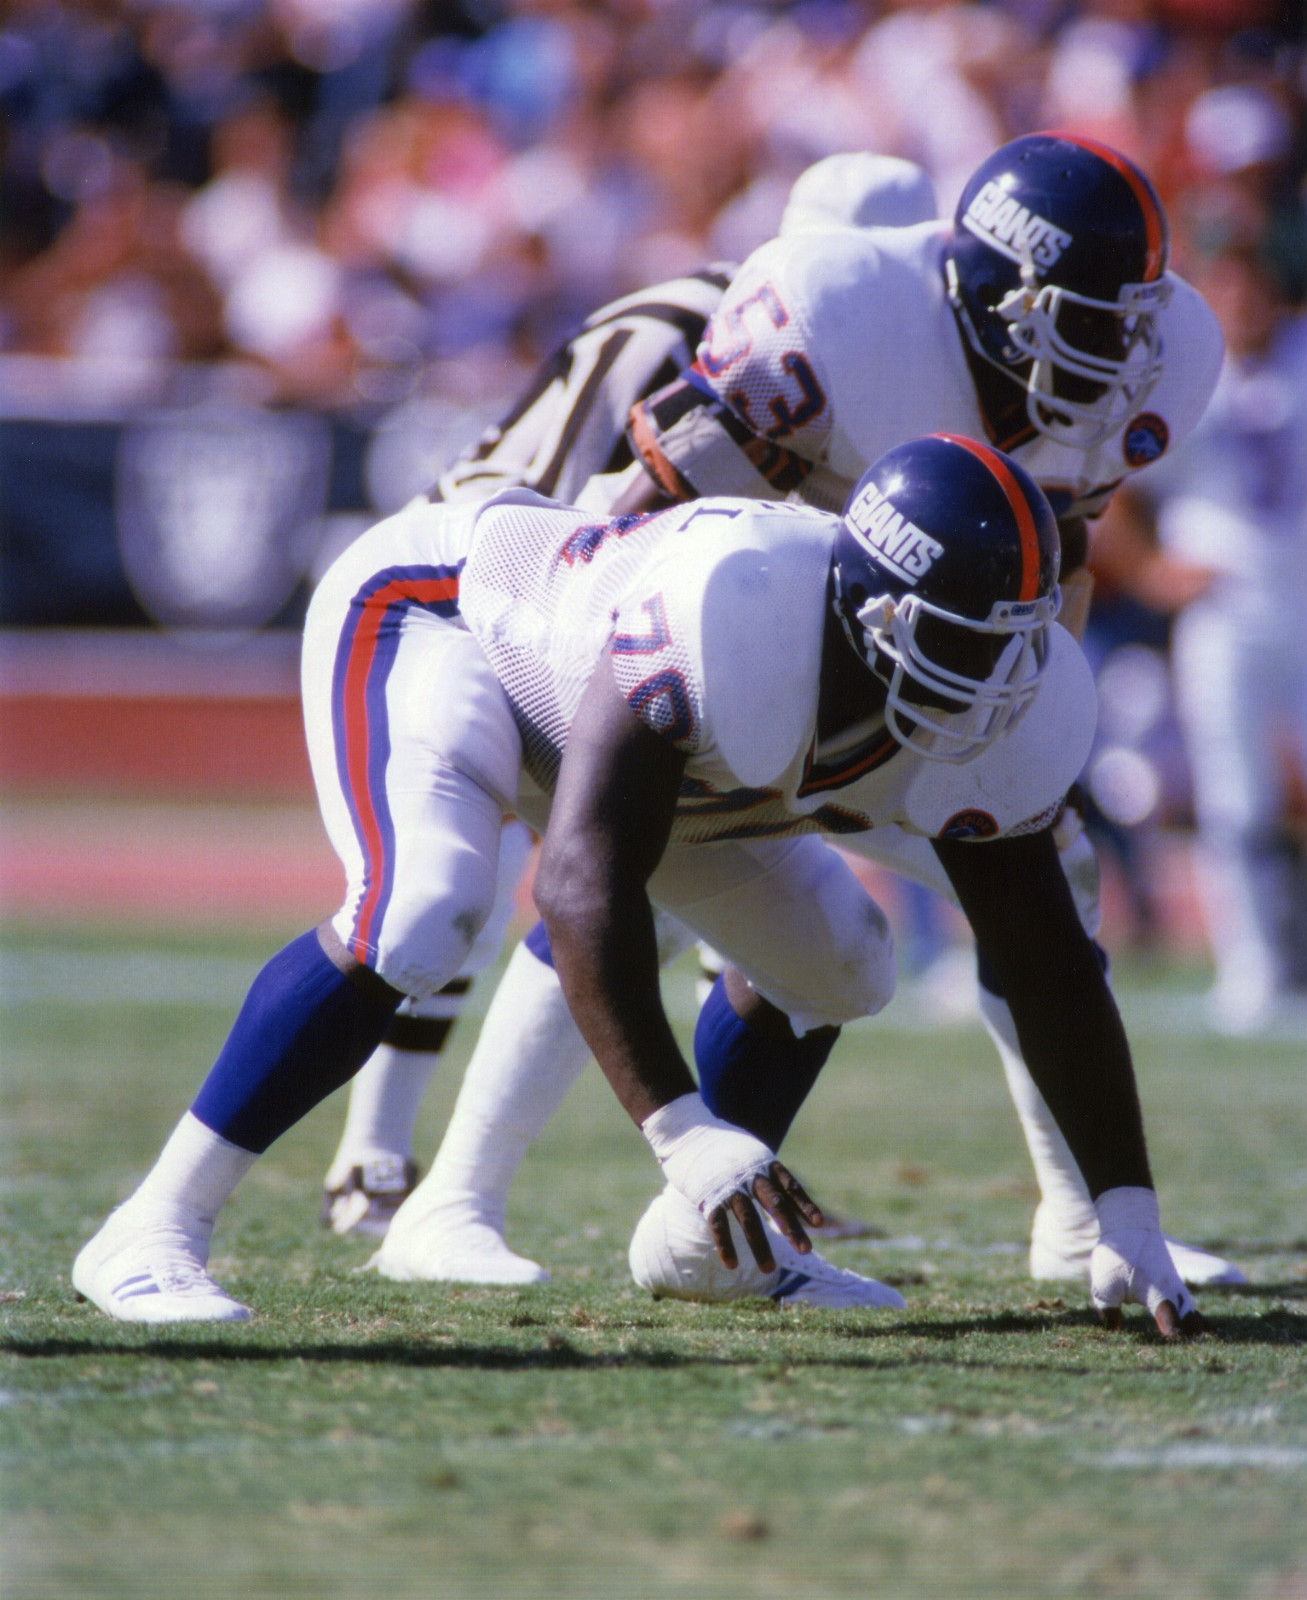 Leonard Marshall (70), Harry Carson (53), New York Giants (September 21, 1986)